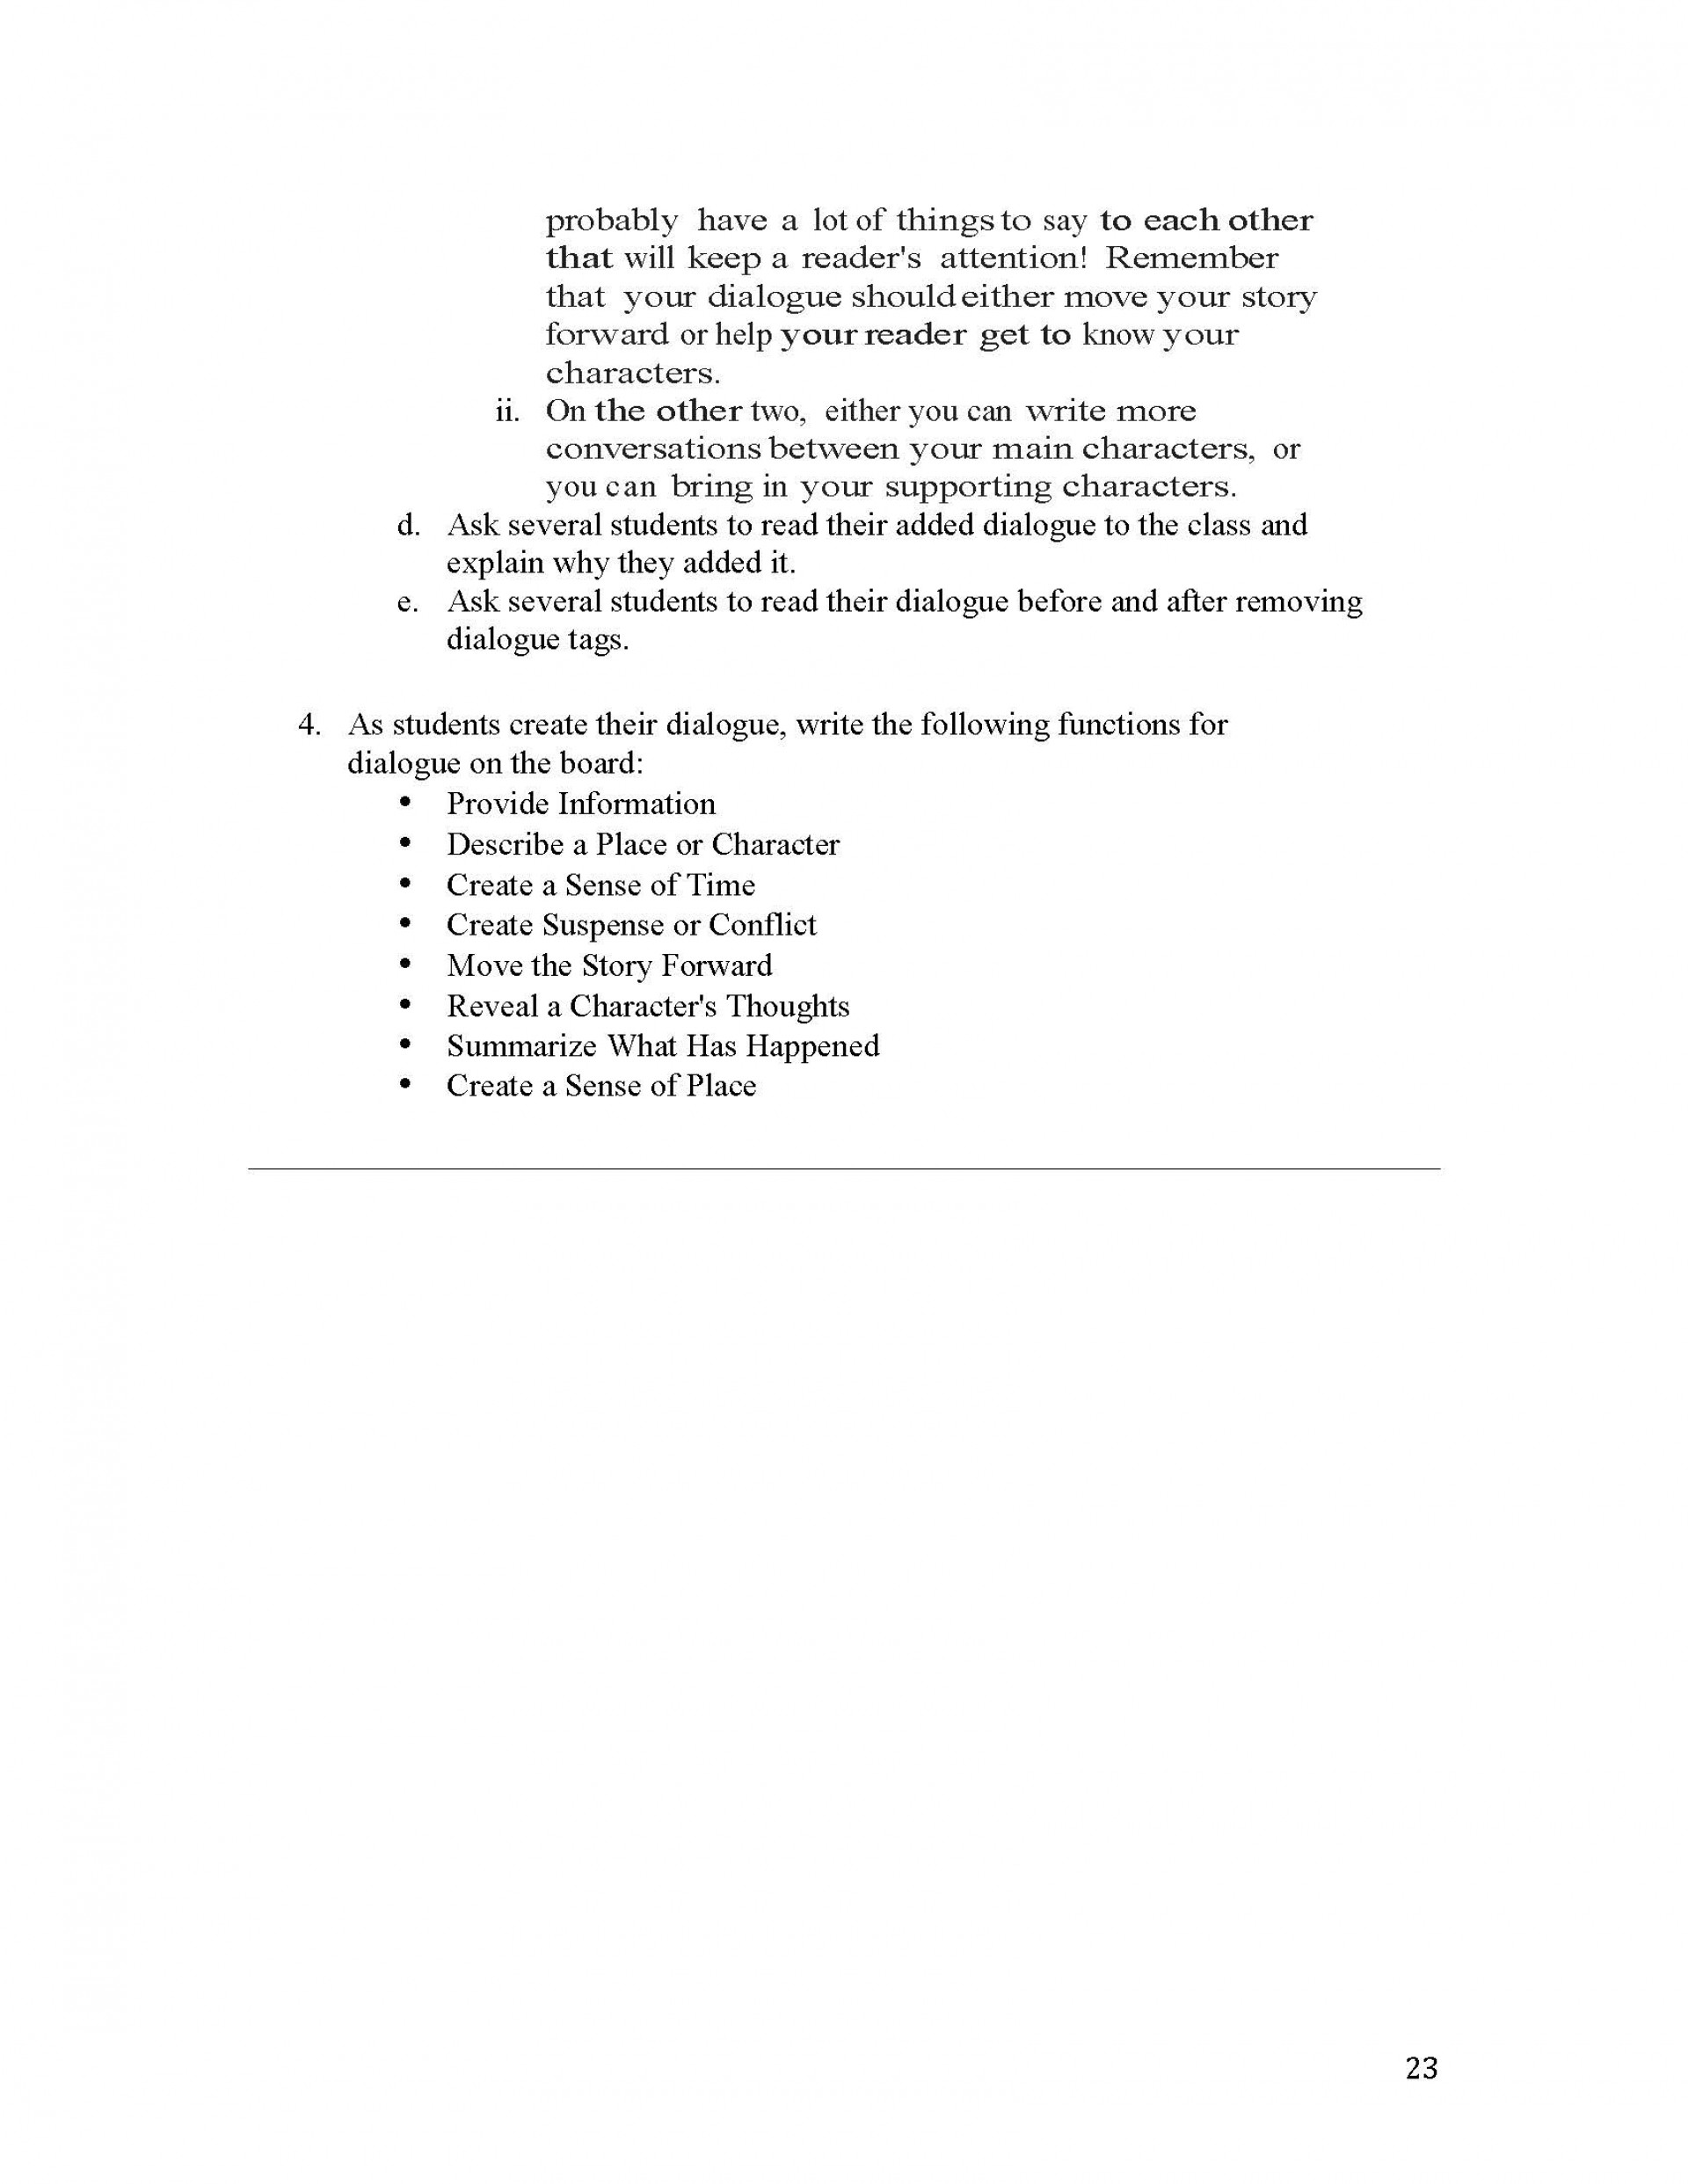 014 Literacy Narrative Essay Example Unit 1 Instructor Copy Page 23 Phenomenal Personal Examples Sample Digital 1920